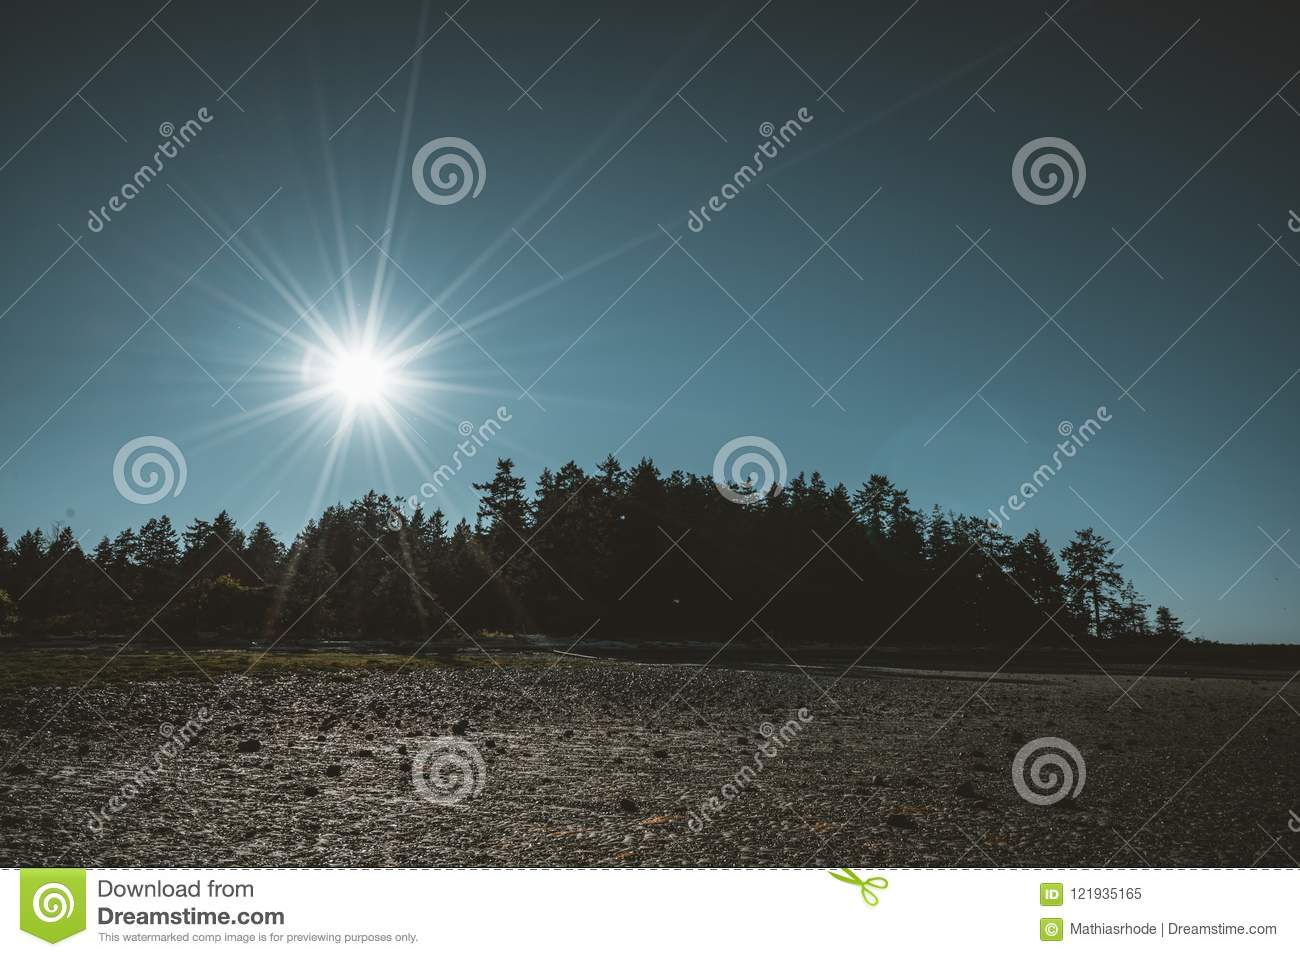 070c2476af709 Vancouver Island beach view on a clear blue sky with sunstar and pacific  coast. Canada